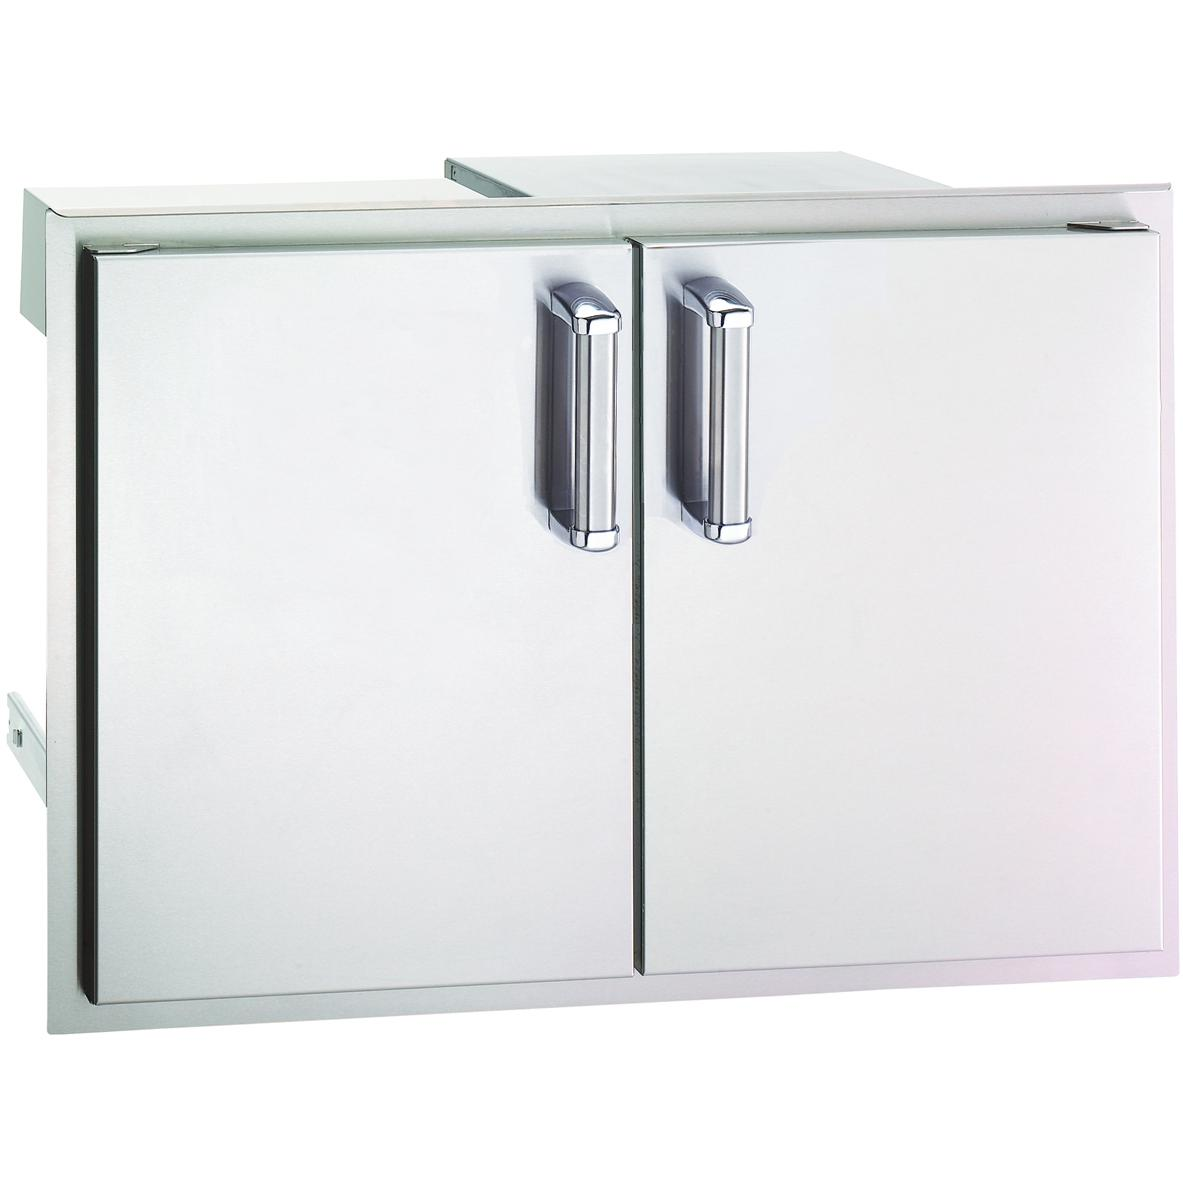 Fire Magic Echelon 30 Inch Double Access Door With Drawers And Trash Bin Storage at Sears.com